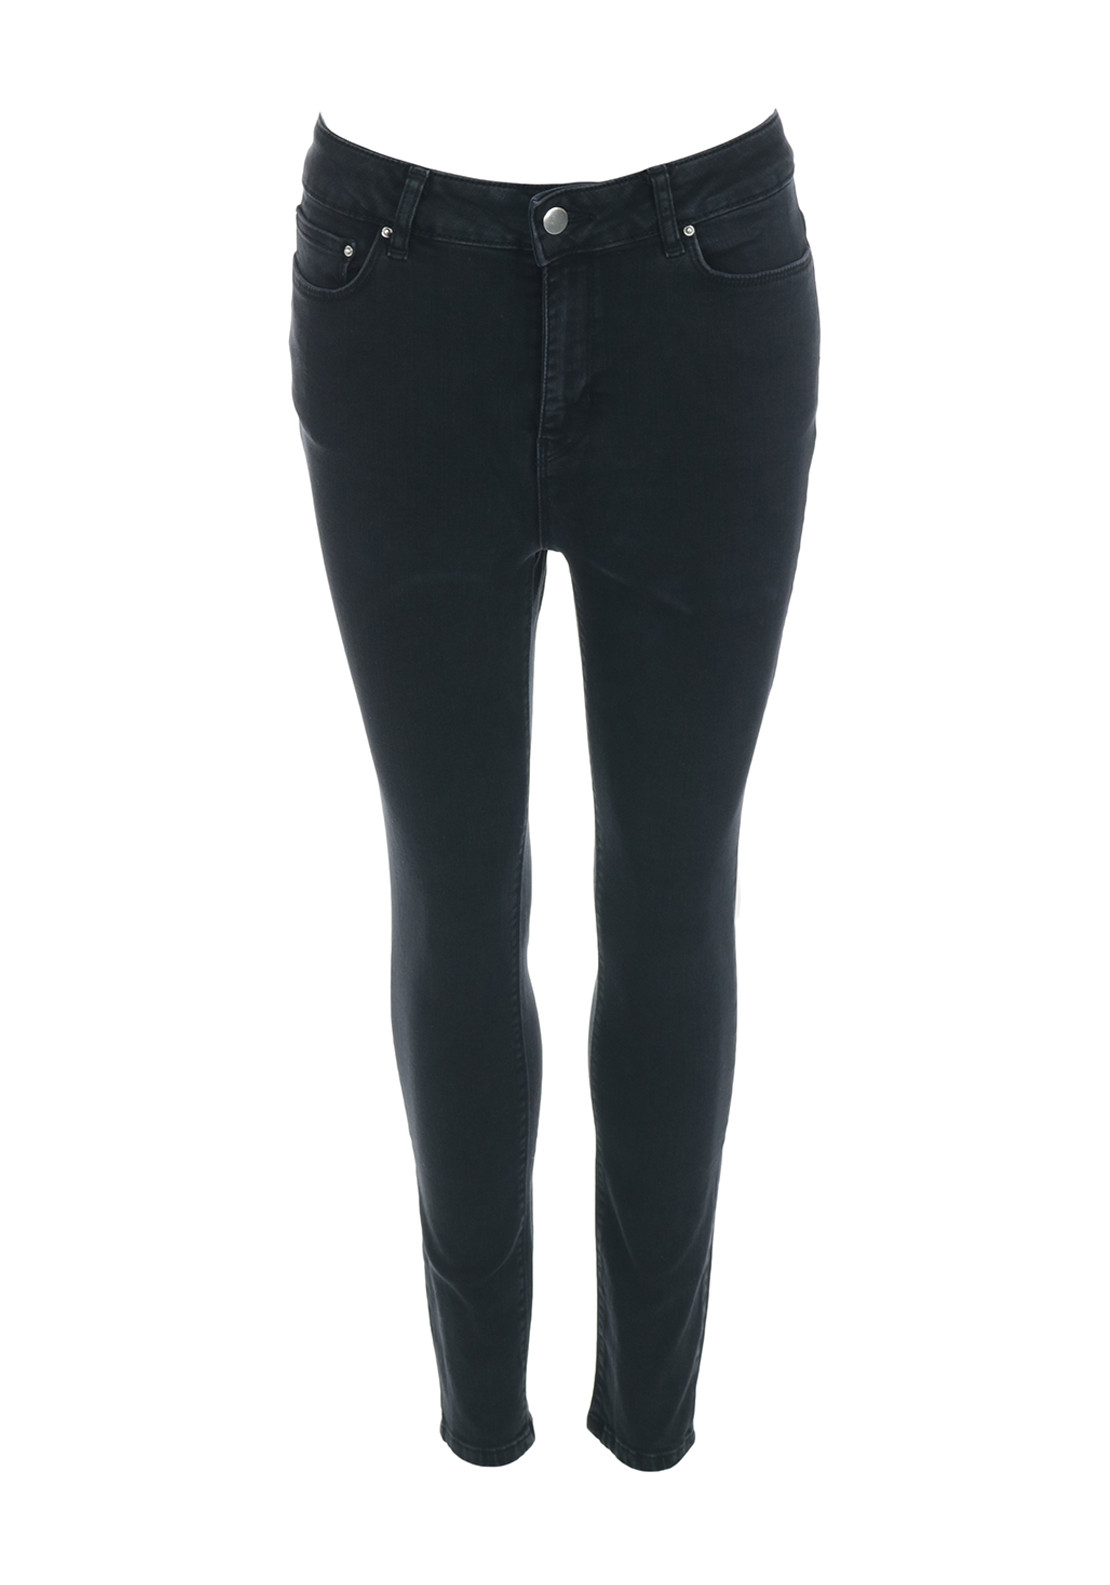 Only Studio1 High Waist Skinny Ankle Grazer Jeans, Black